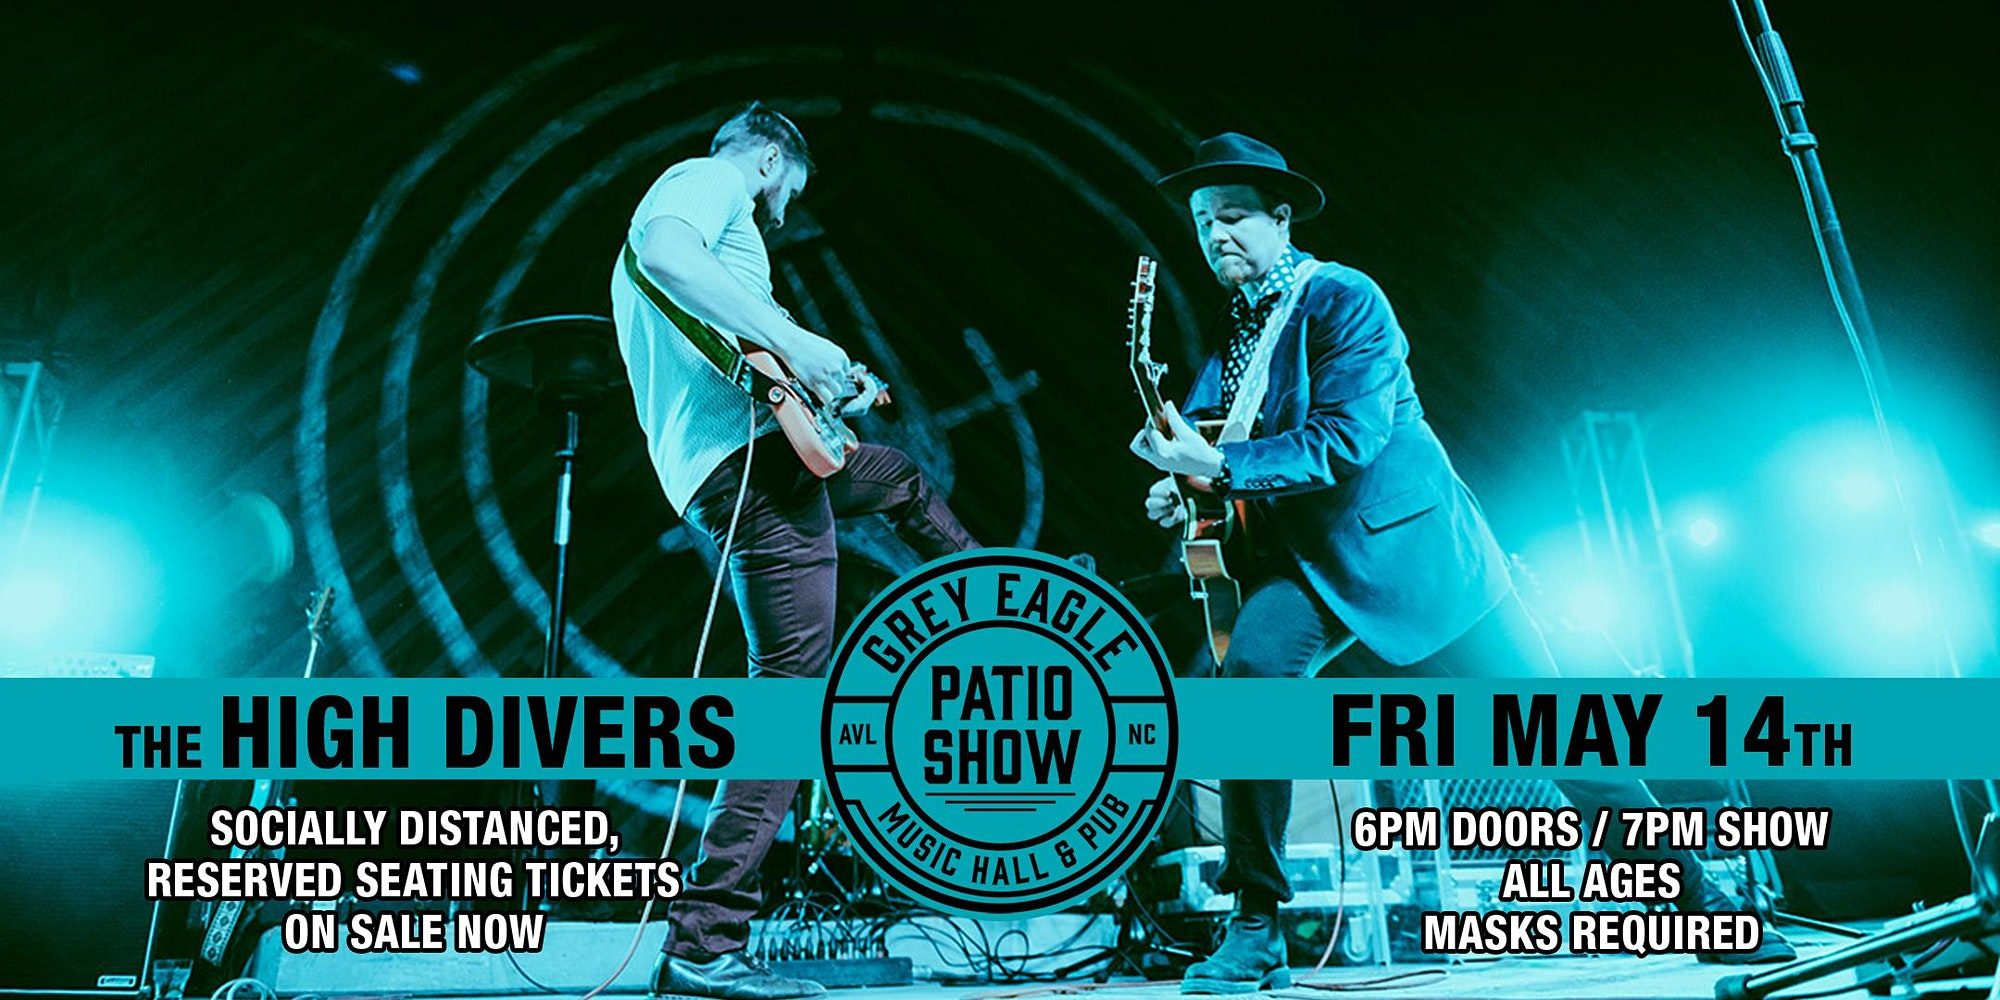 PATIO SHOW: The High Divers